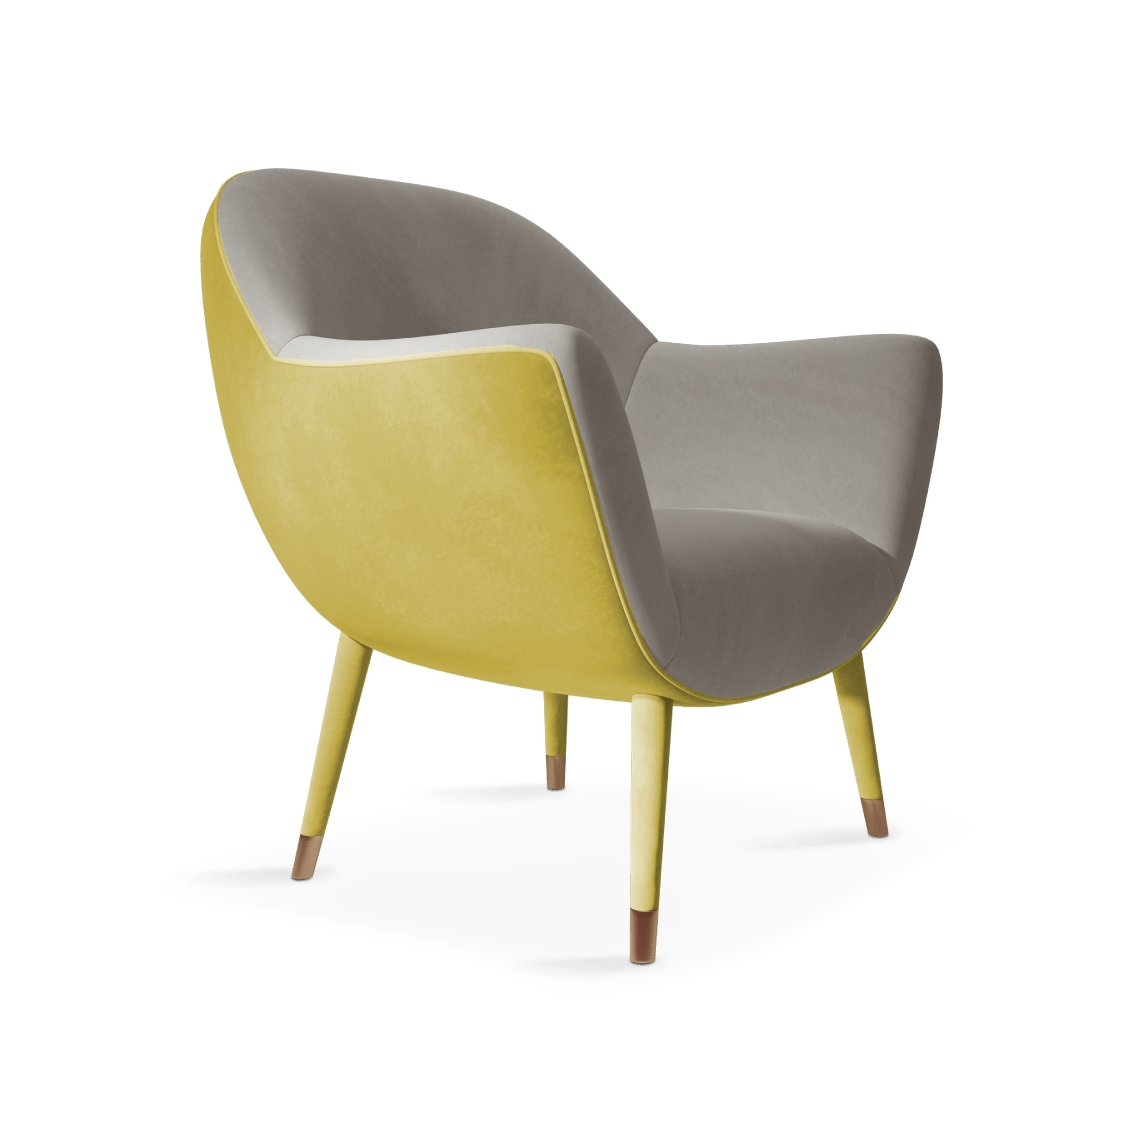 Lucy Mid-Century Modern Armchair in illuminating and ultimate gray cotton velvet